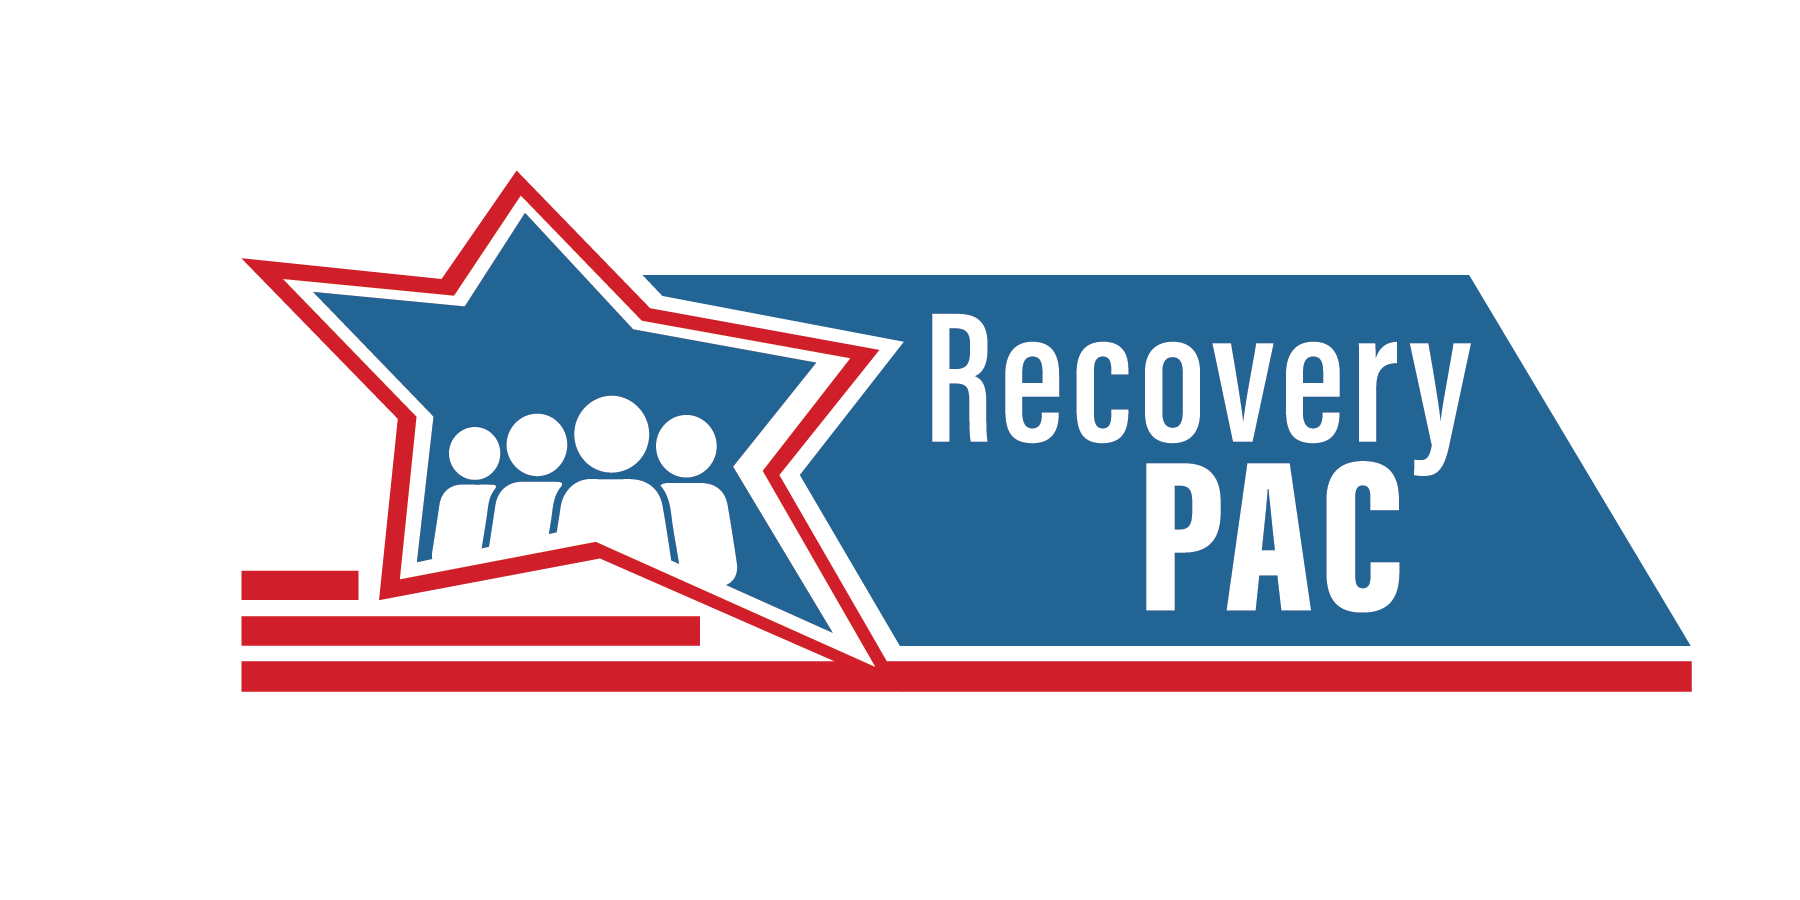 Nevada Recovery PAC